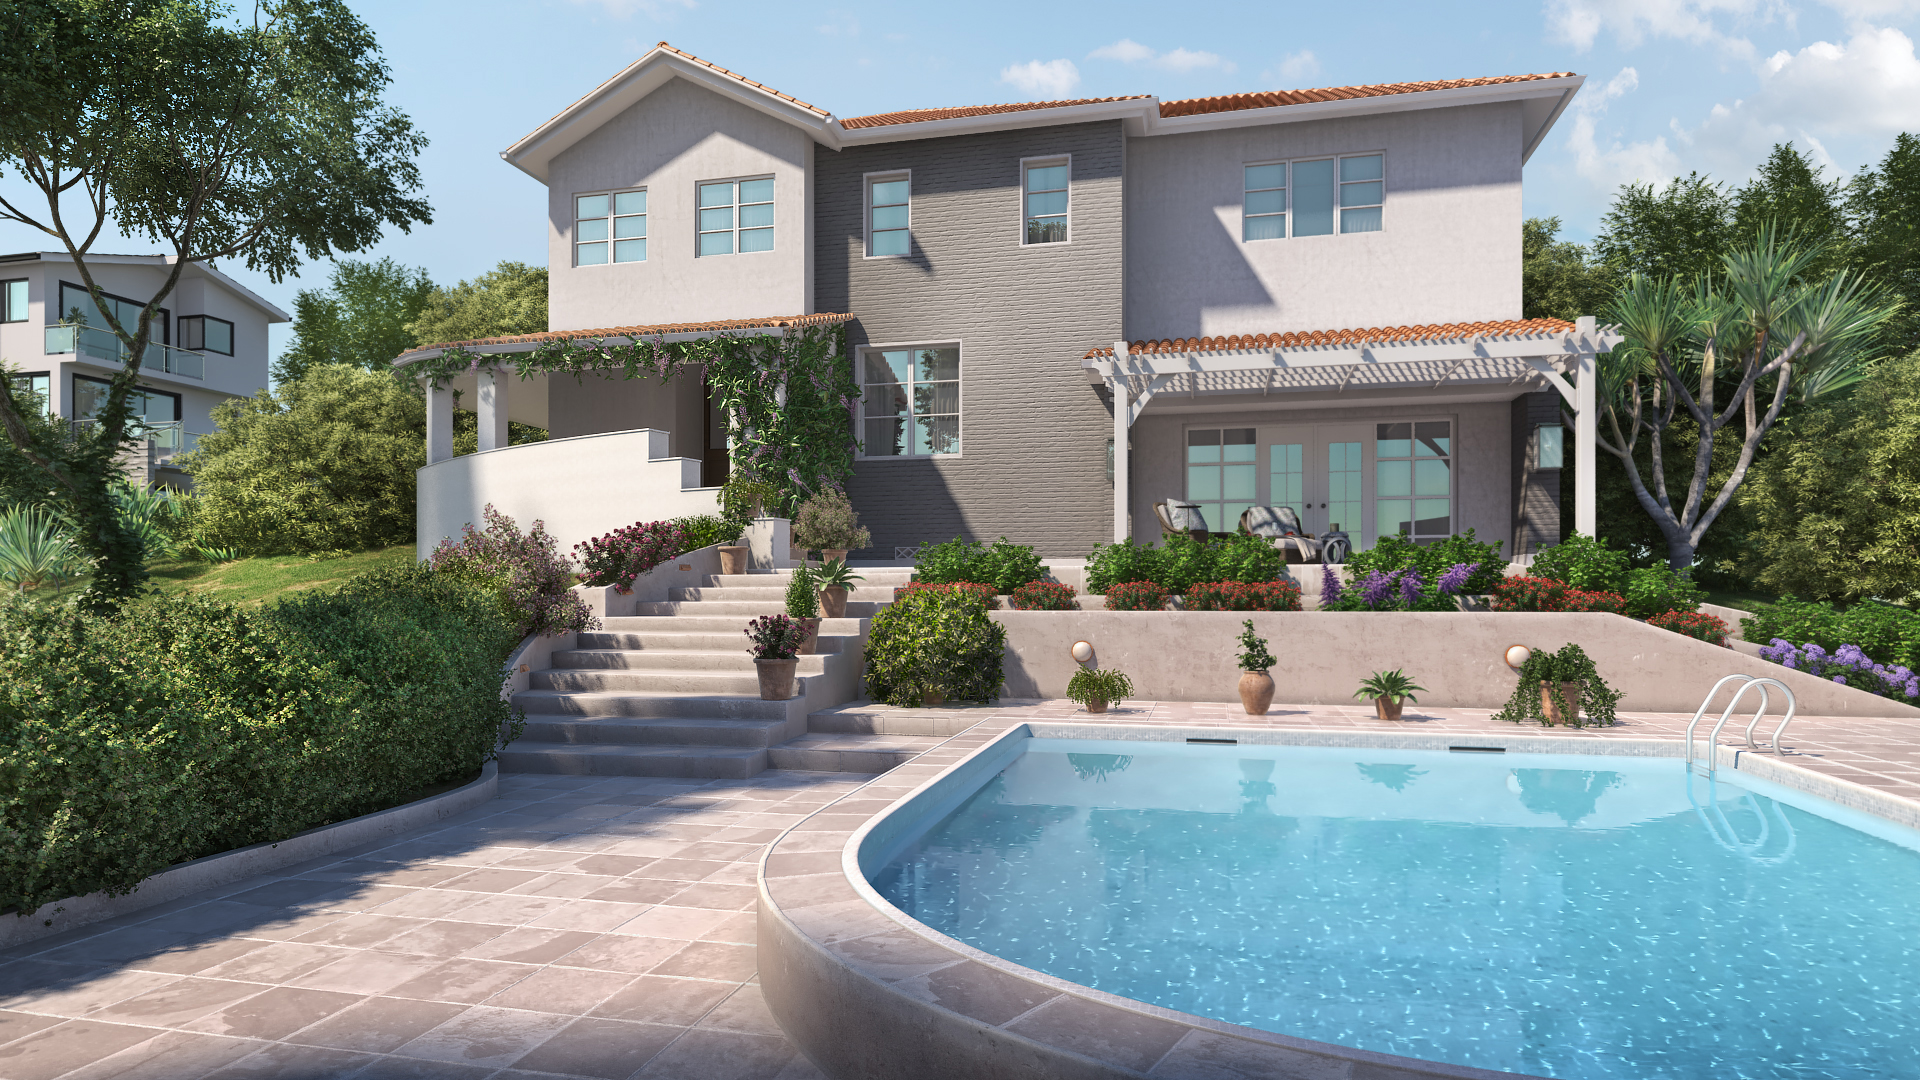 Premium 3D Exterior Rendering Services for Residential Real Estate - House Rendering